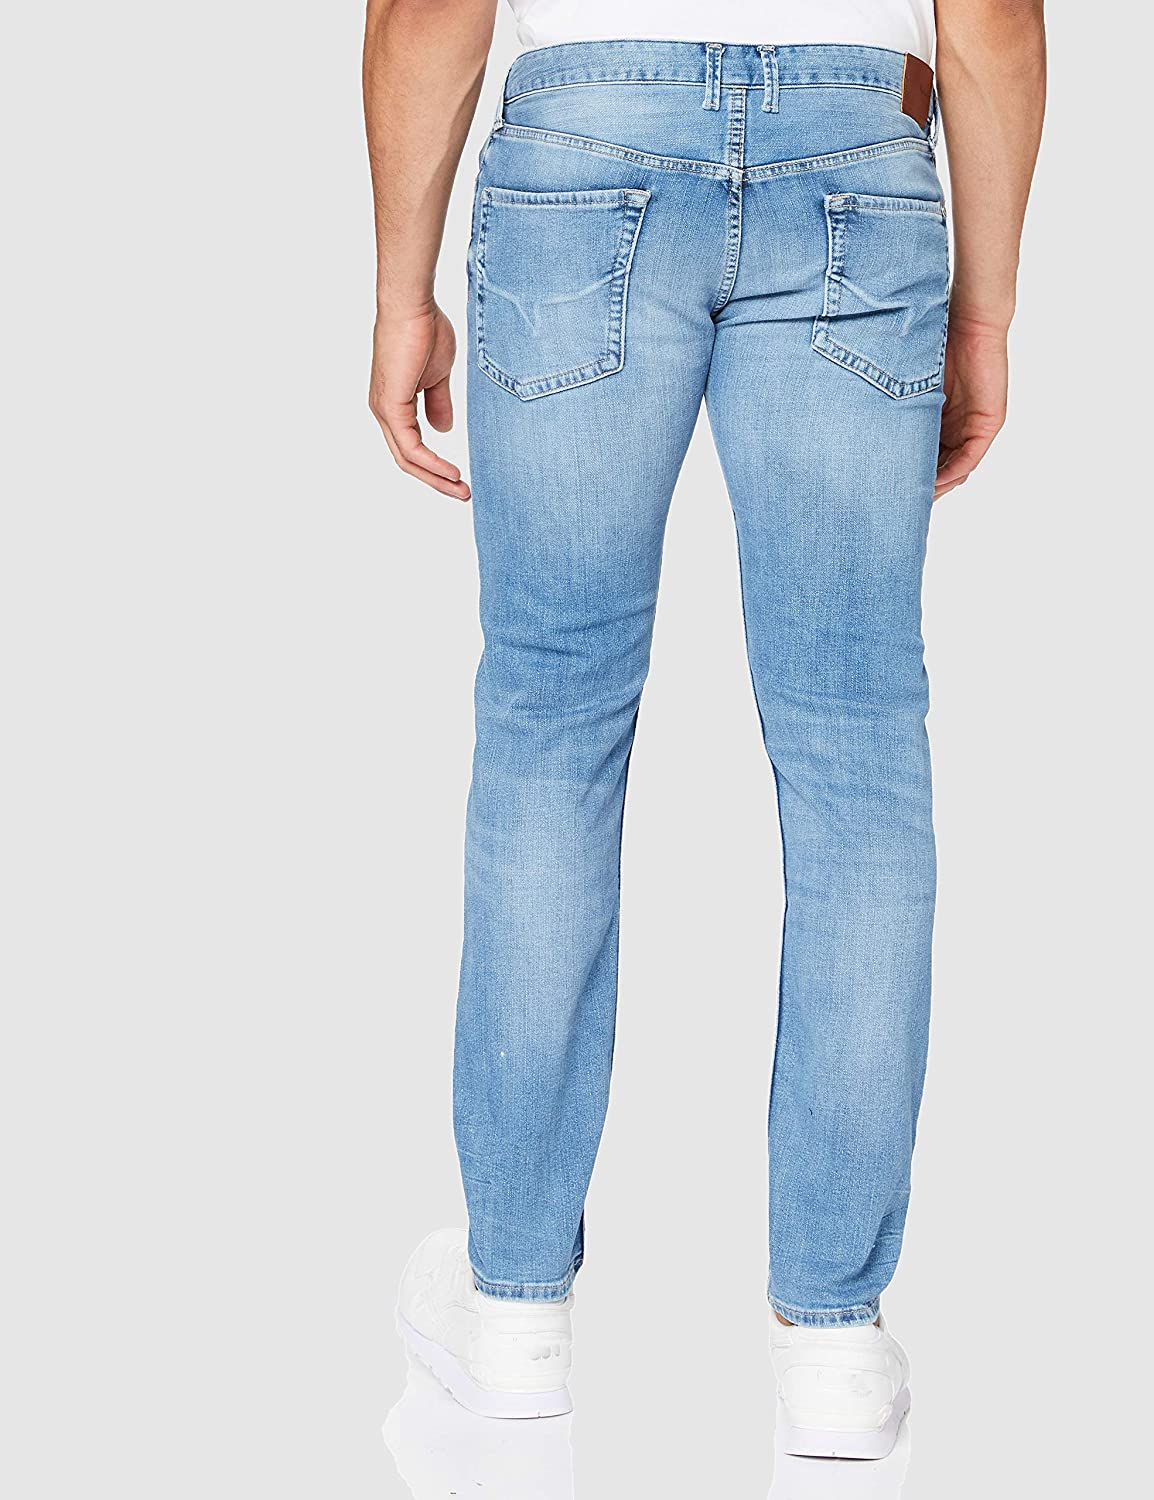 Pepe Jeans Jeans Homme 000denim